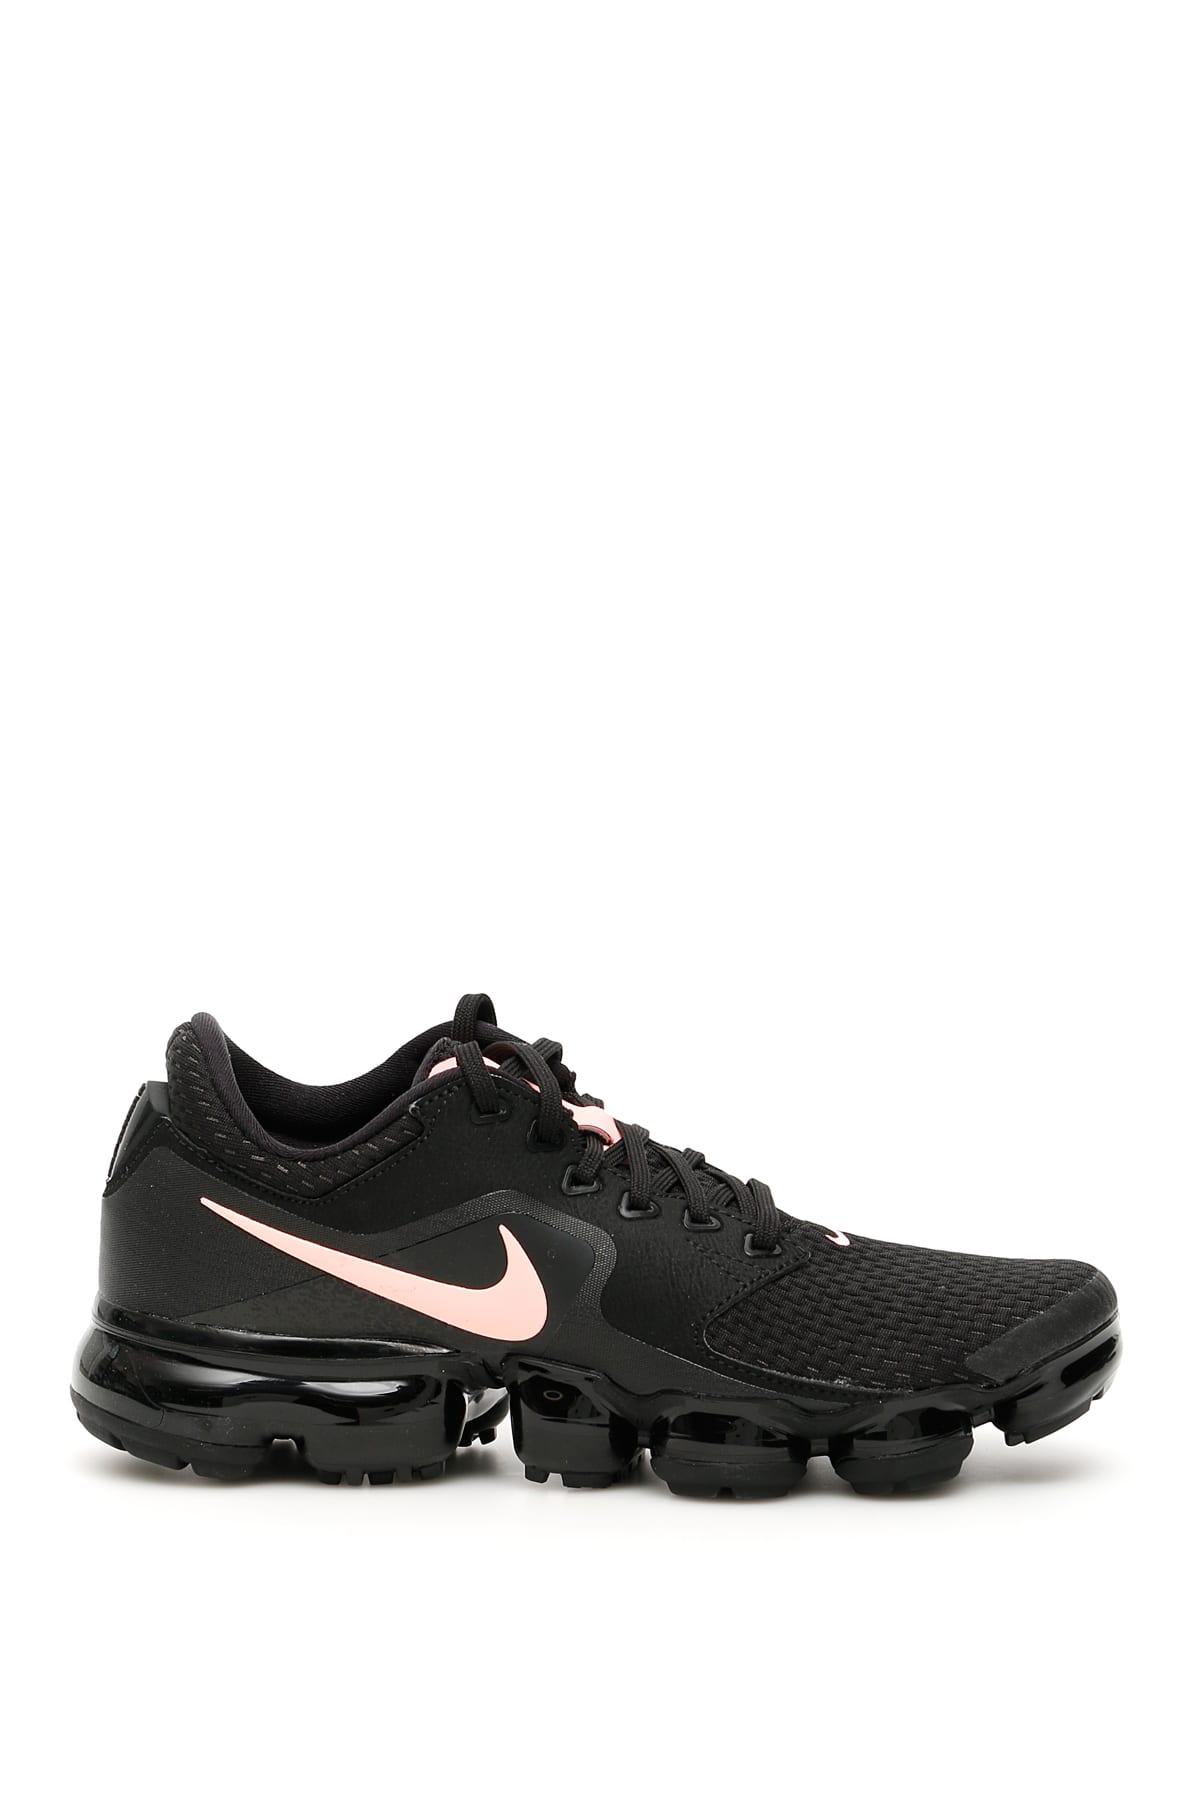 new york 066ca 31bec Nike Air Vapormax Sneakers